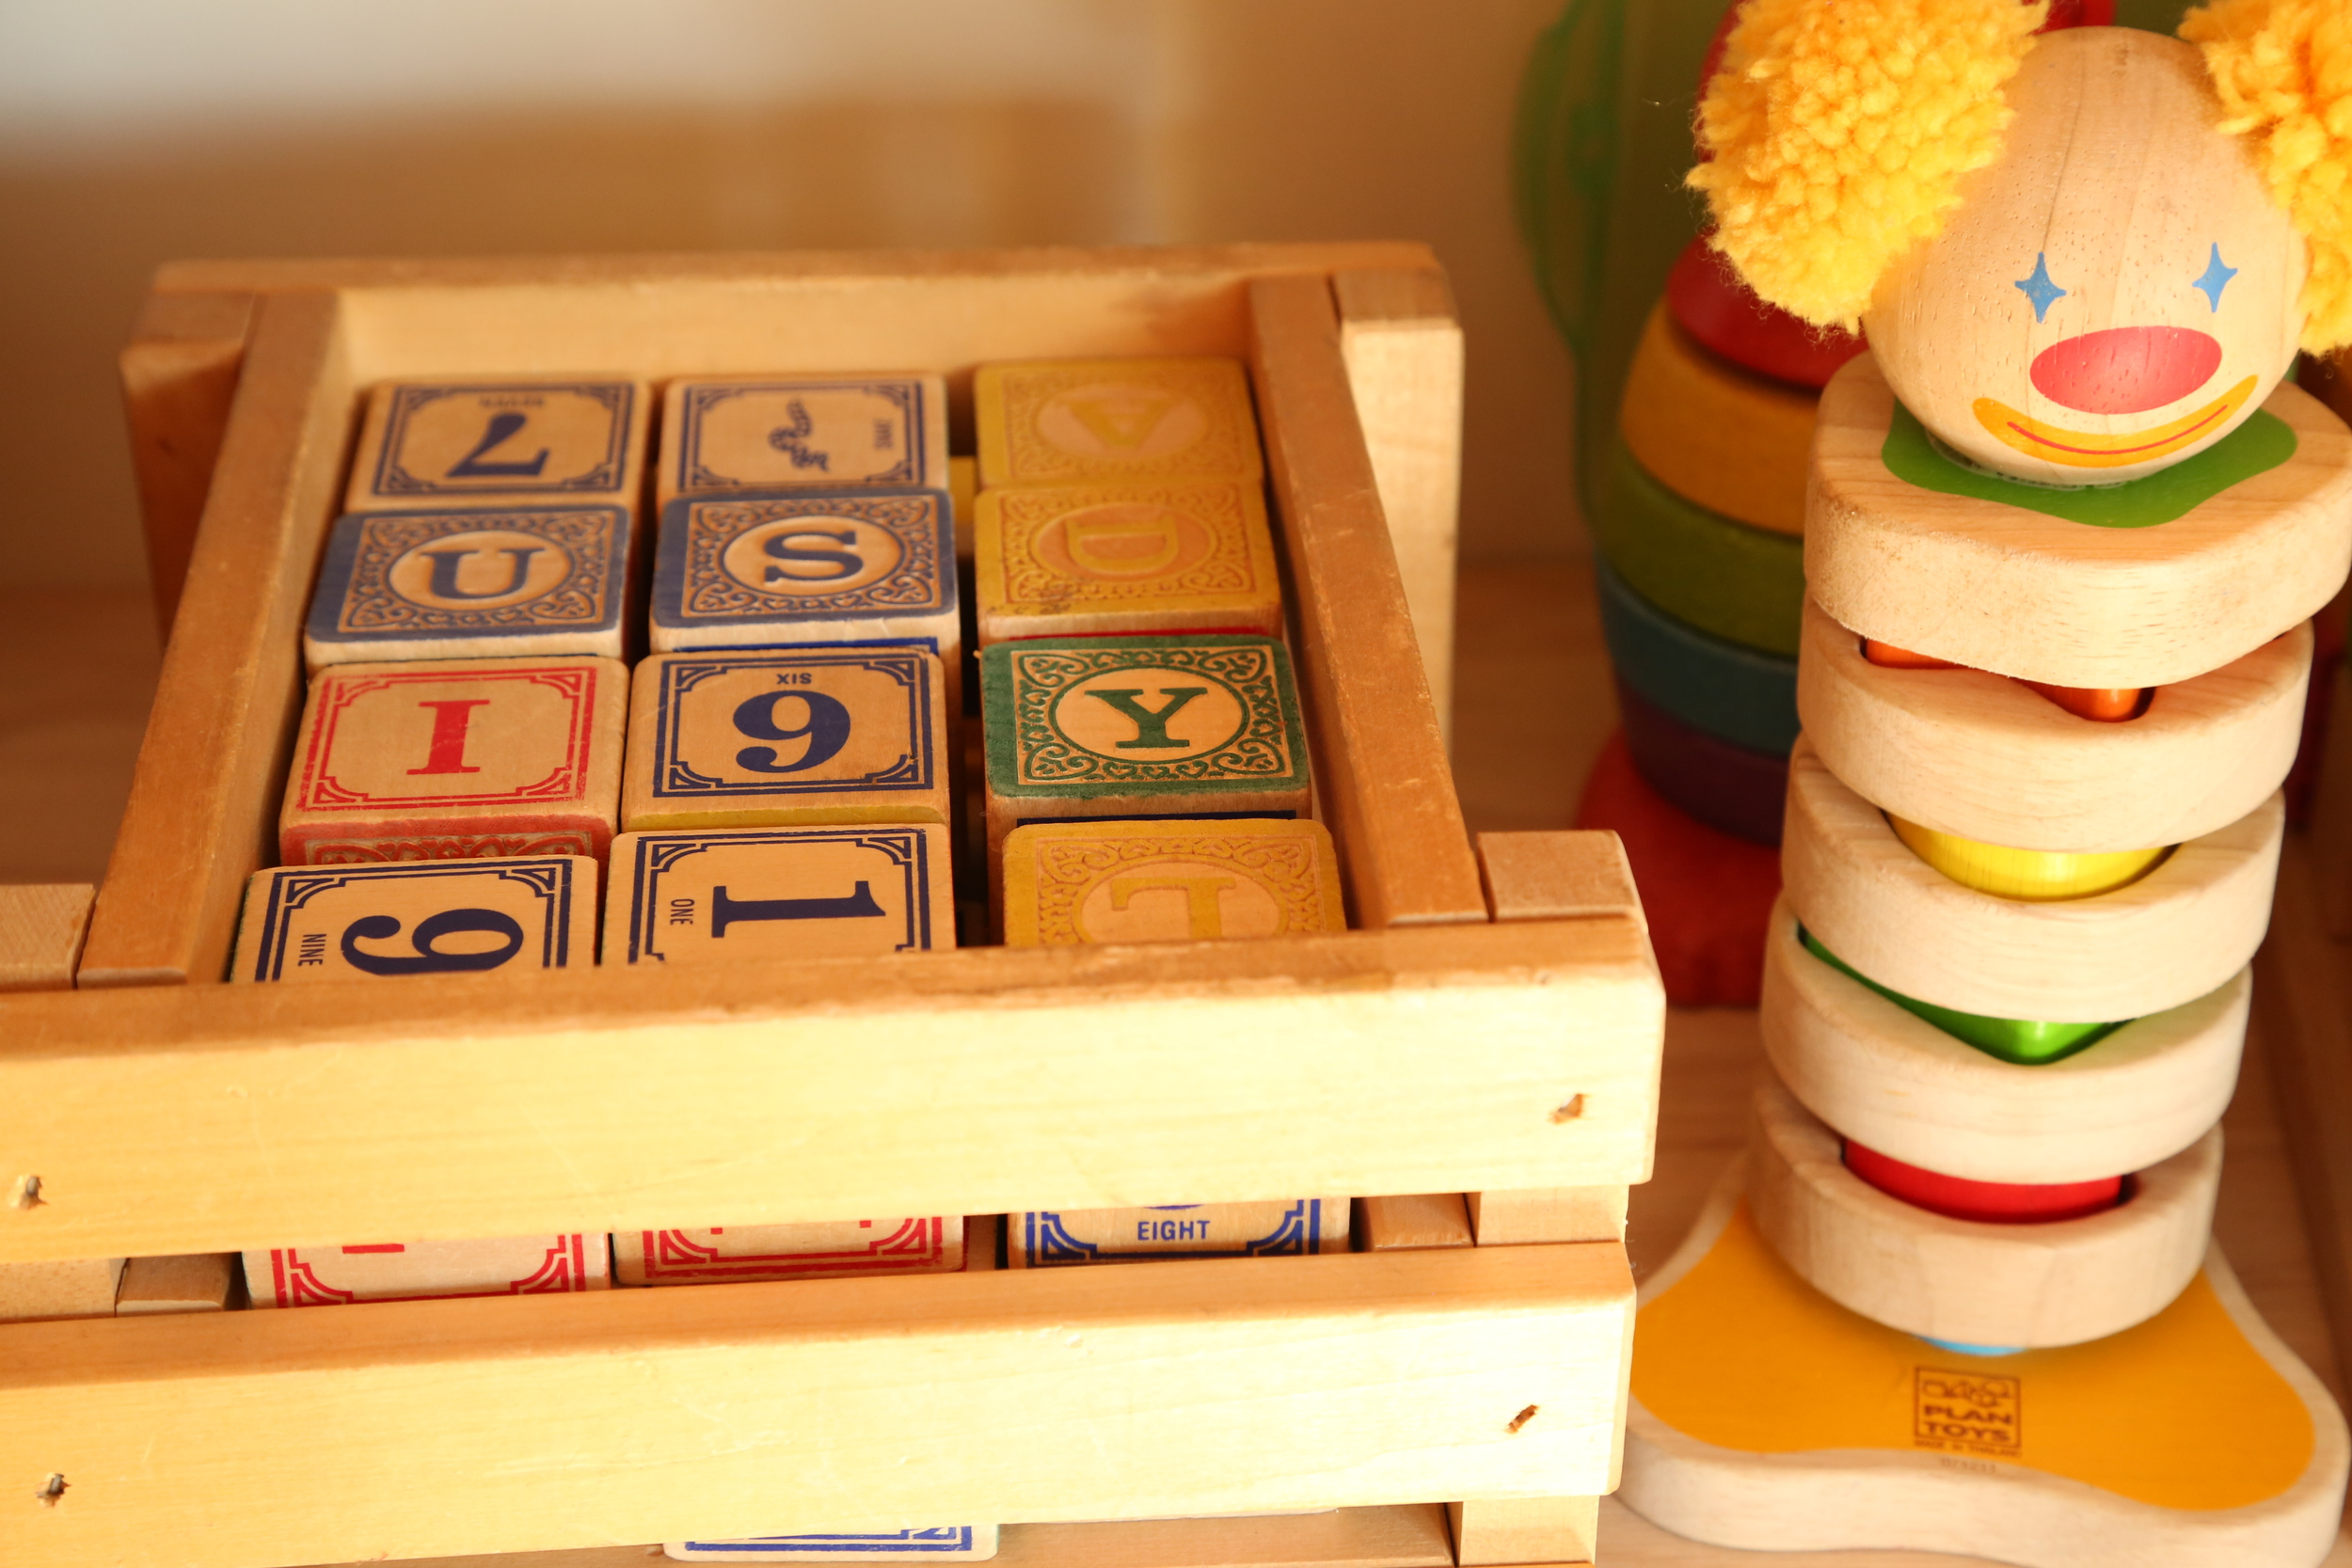 Finally, some Montessori activities.  Some of their toys - the blocks I found in dark corner on the floor for $8 at an antique mall in Tucson (the Buffalo place if you're a local there...)  Having toddlers with you ensures you're always aware of what's on the floor... The stacking puzzles are both from Aunt Stacy!  G and I identify the numbers, letter, and animals on the blocks.  C and I do crayon rubbings of the letters or spell words with them during story time.  This week, we're going to take small objects and select the letter each object starts with, an activity he was fond of at Montessori school.